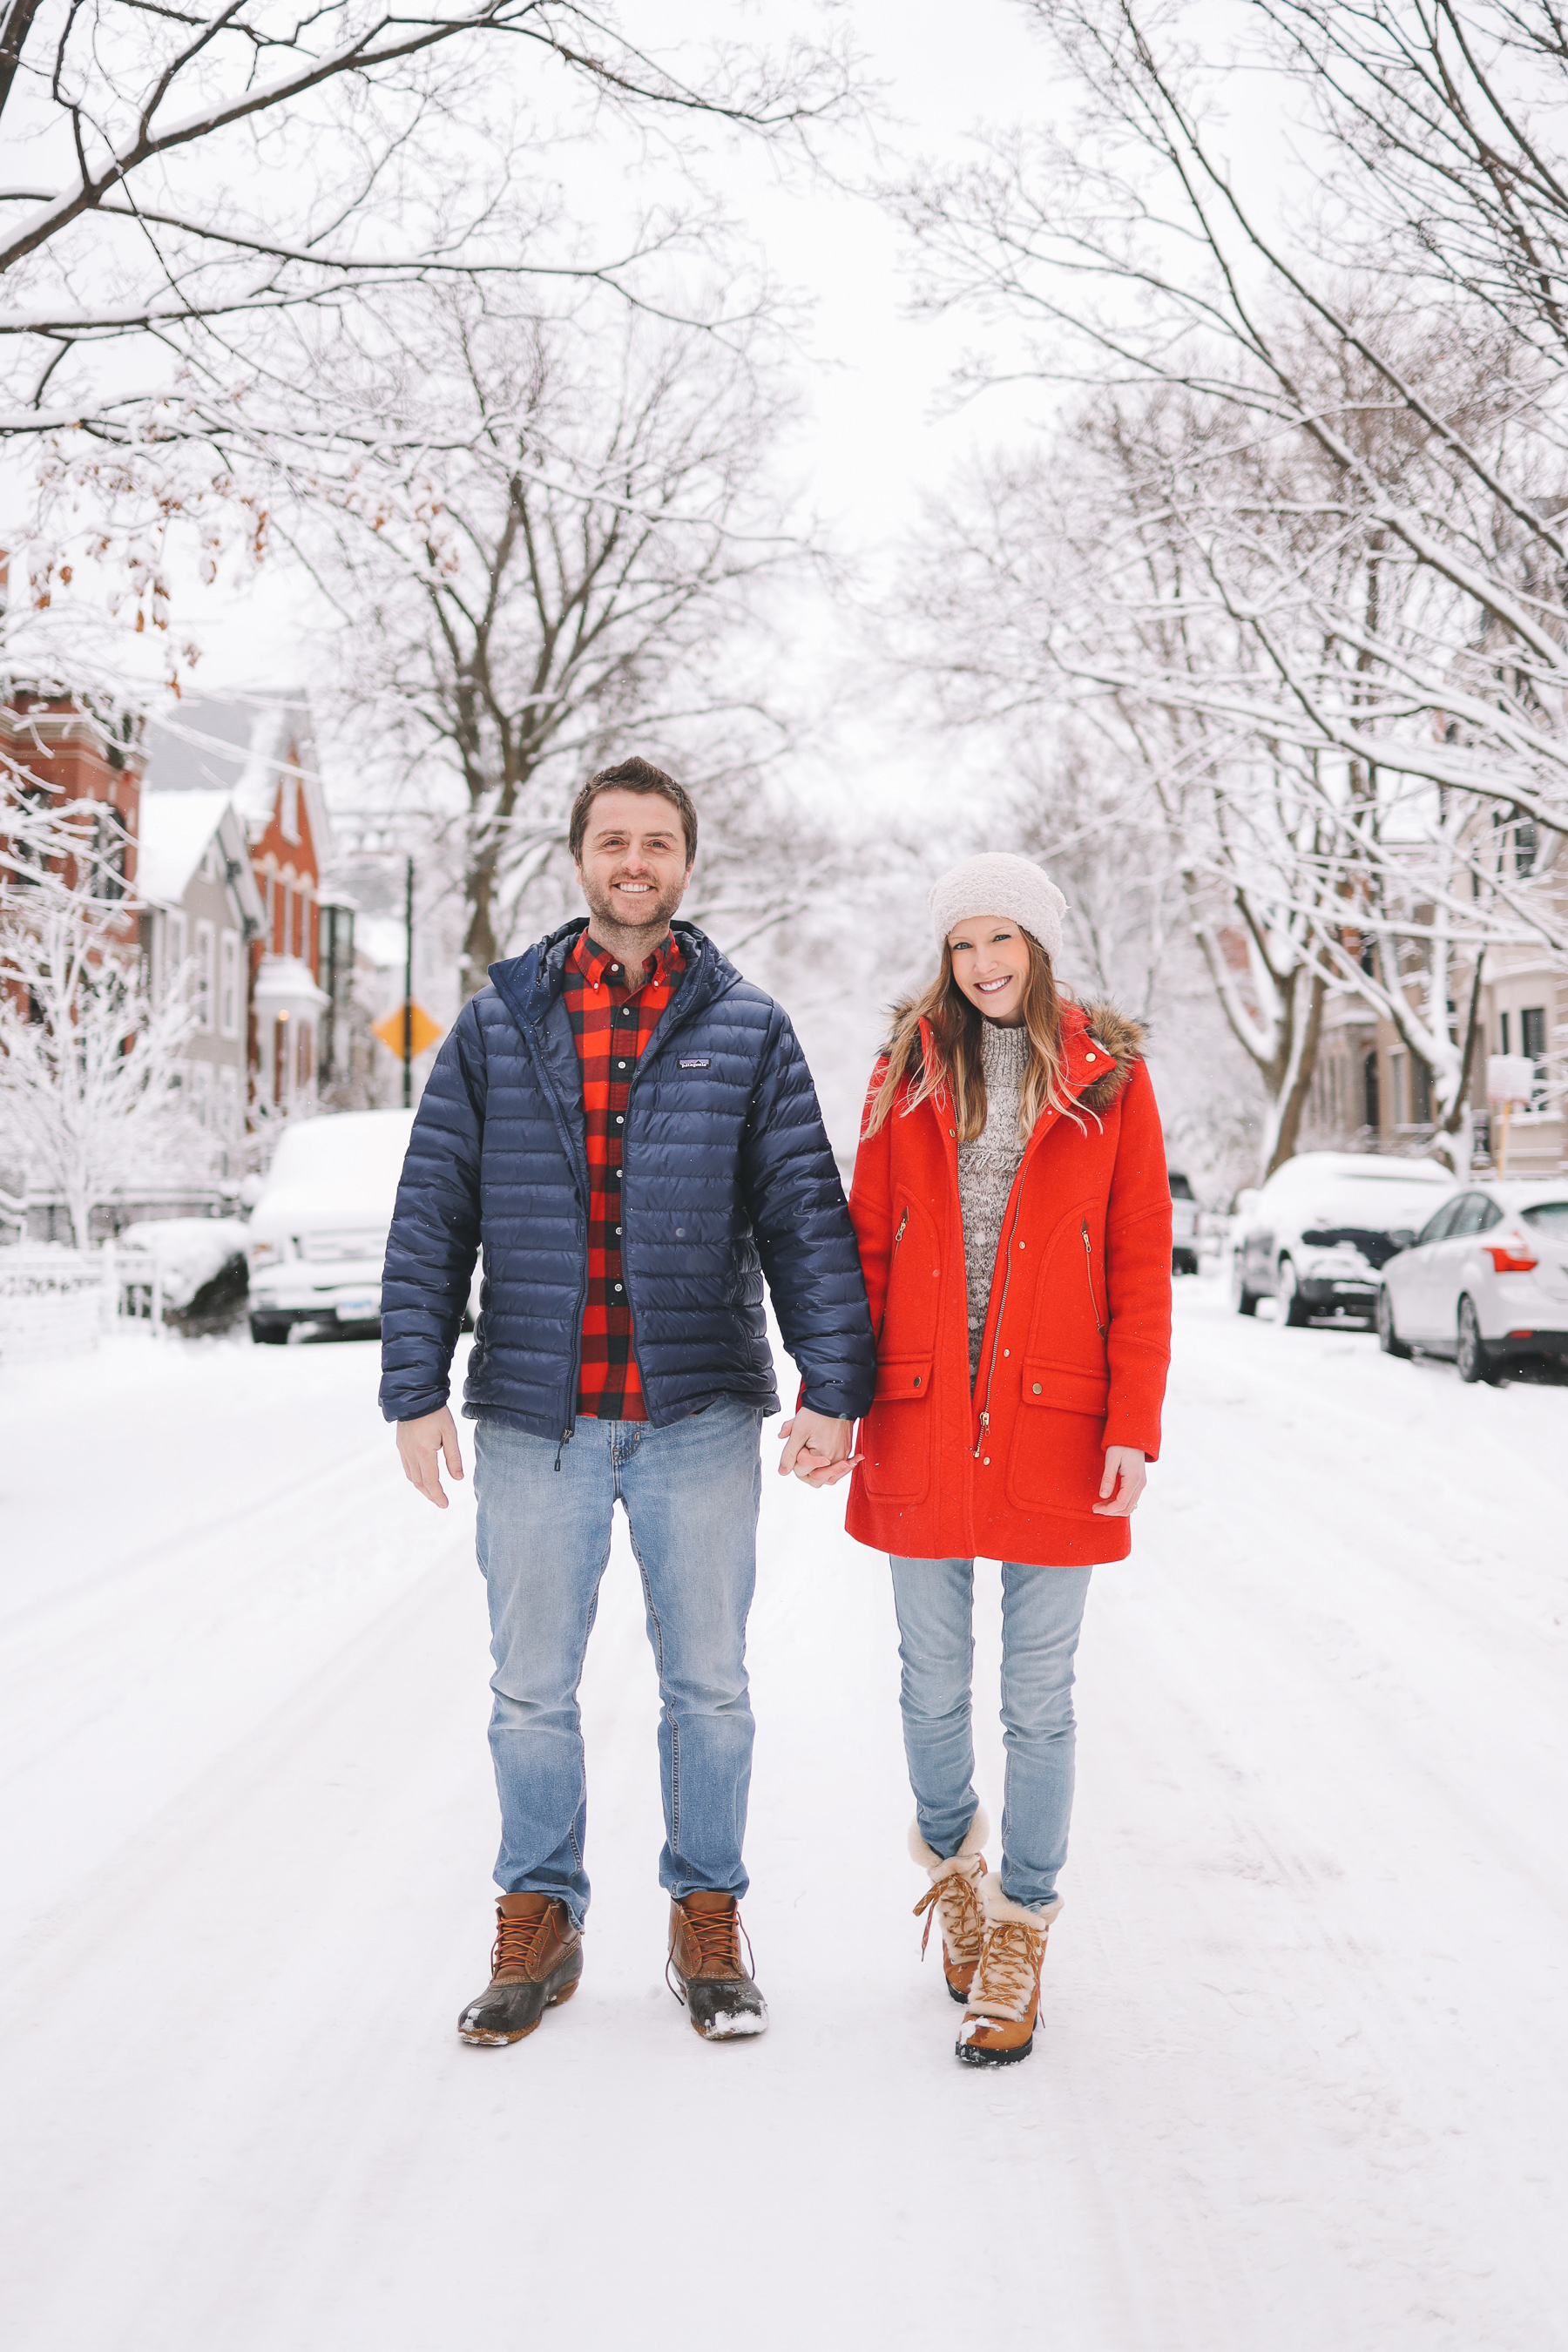 ♥️ 10 Nice Things to Do on Valentine's Day ♥️ couple holding hands in the snow